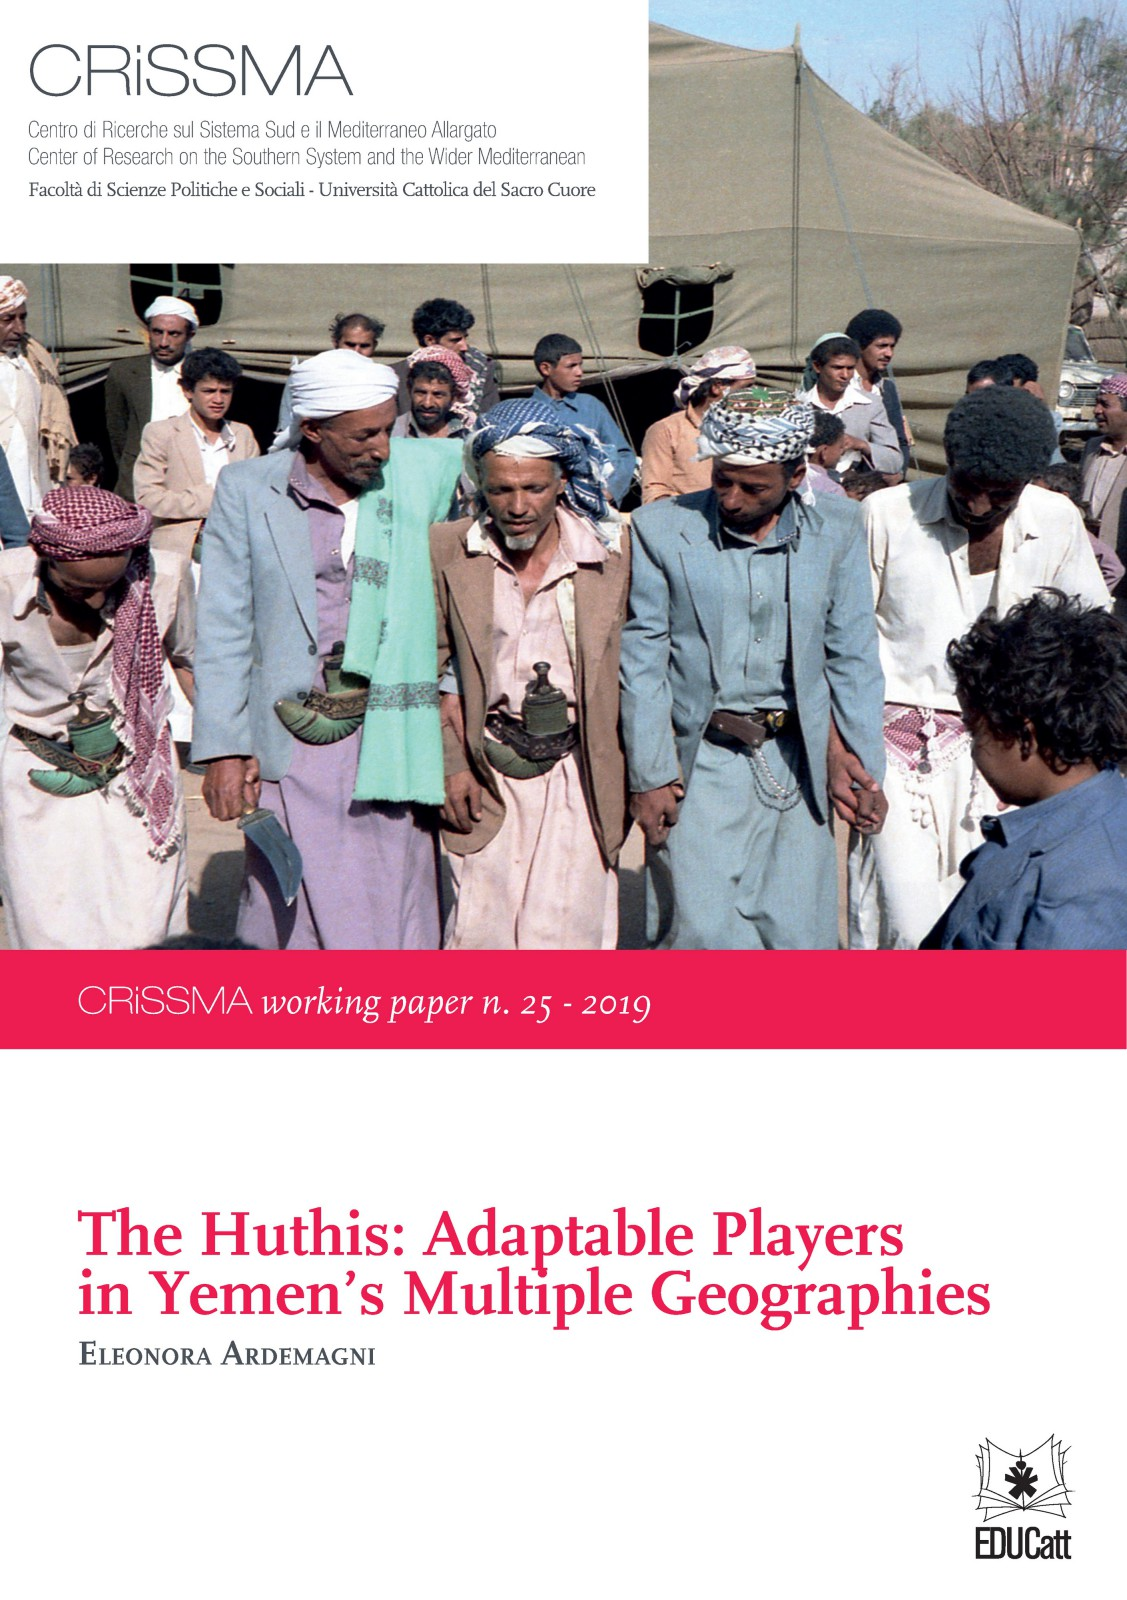 THE HUTHIS: ADAPTABLE PLAYERS IN YEMEN'S MULTIPLE GEOGRAPHIES (CRISSMA WORKING PAPERS N. 25-2019)